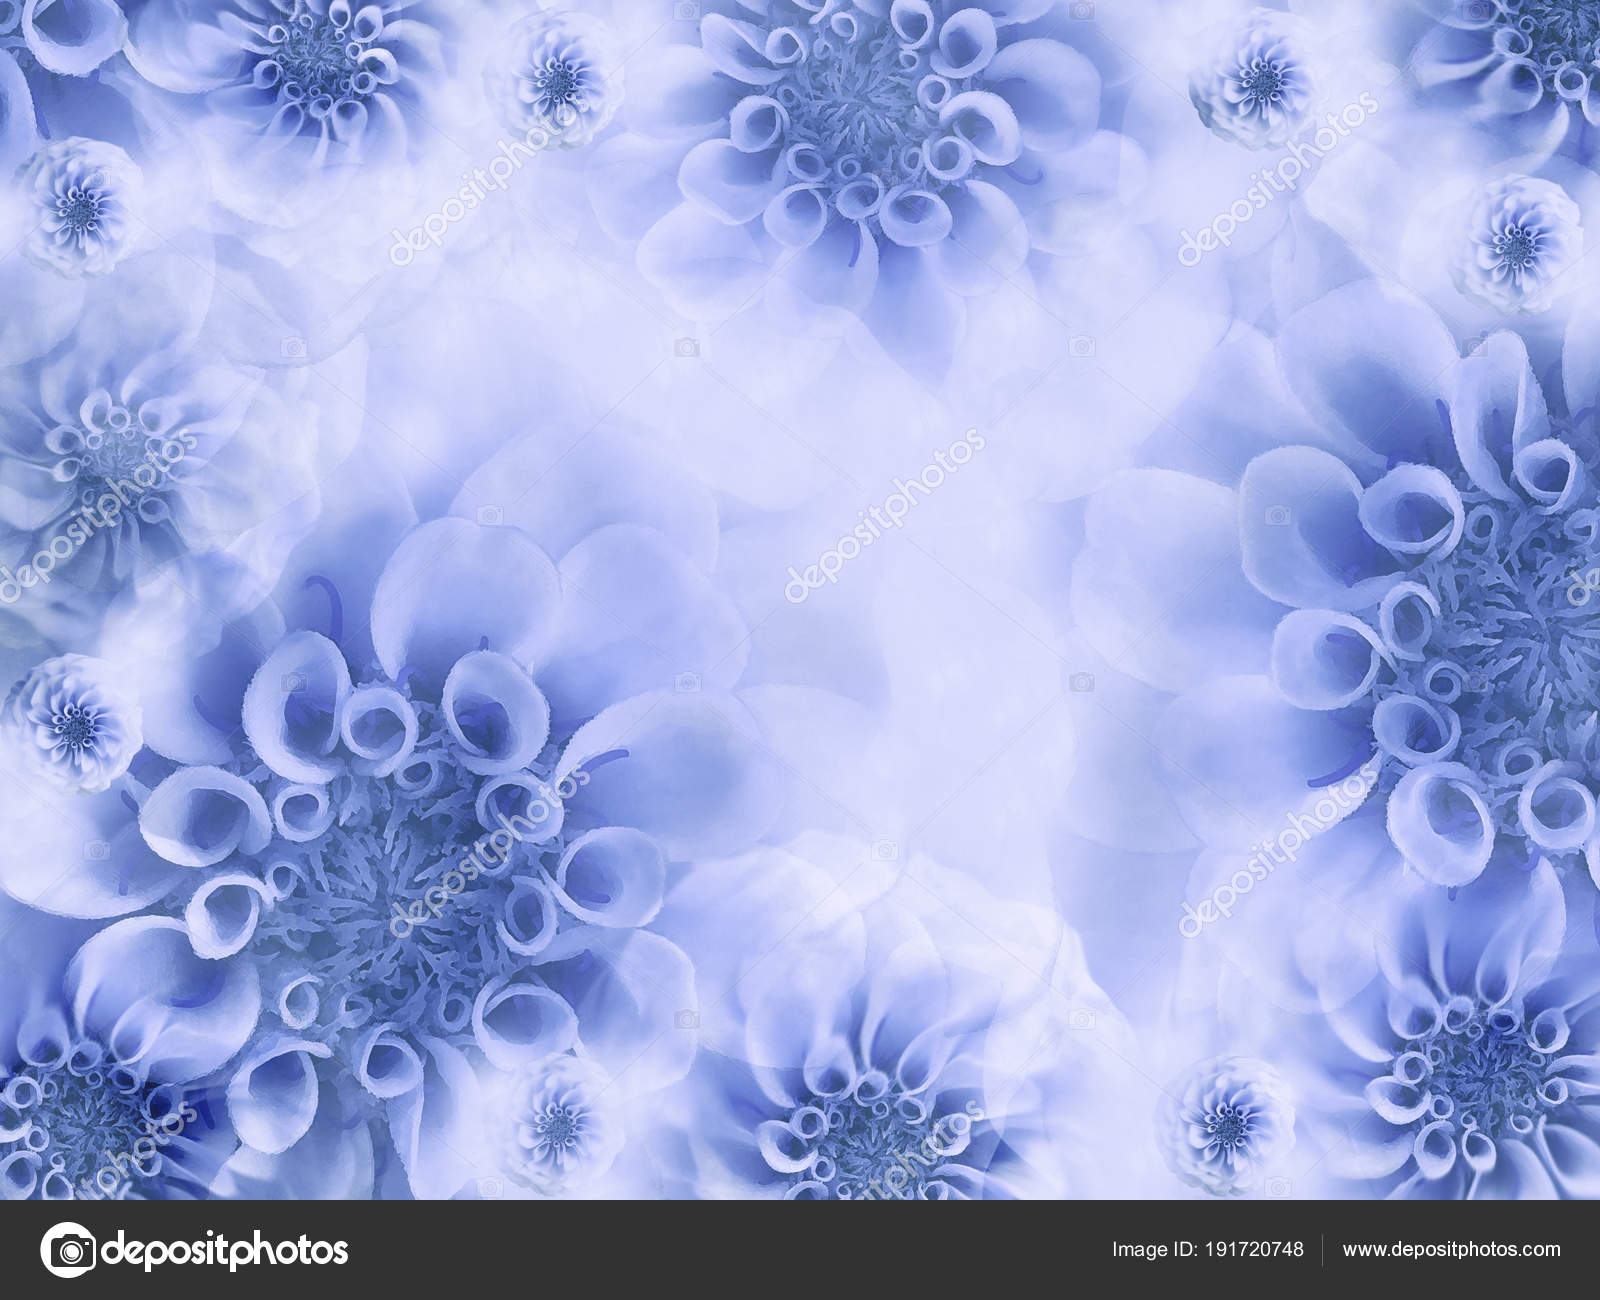 Floral White Blue Beautiful Background Wallpapers Light Blue Flowers